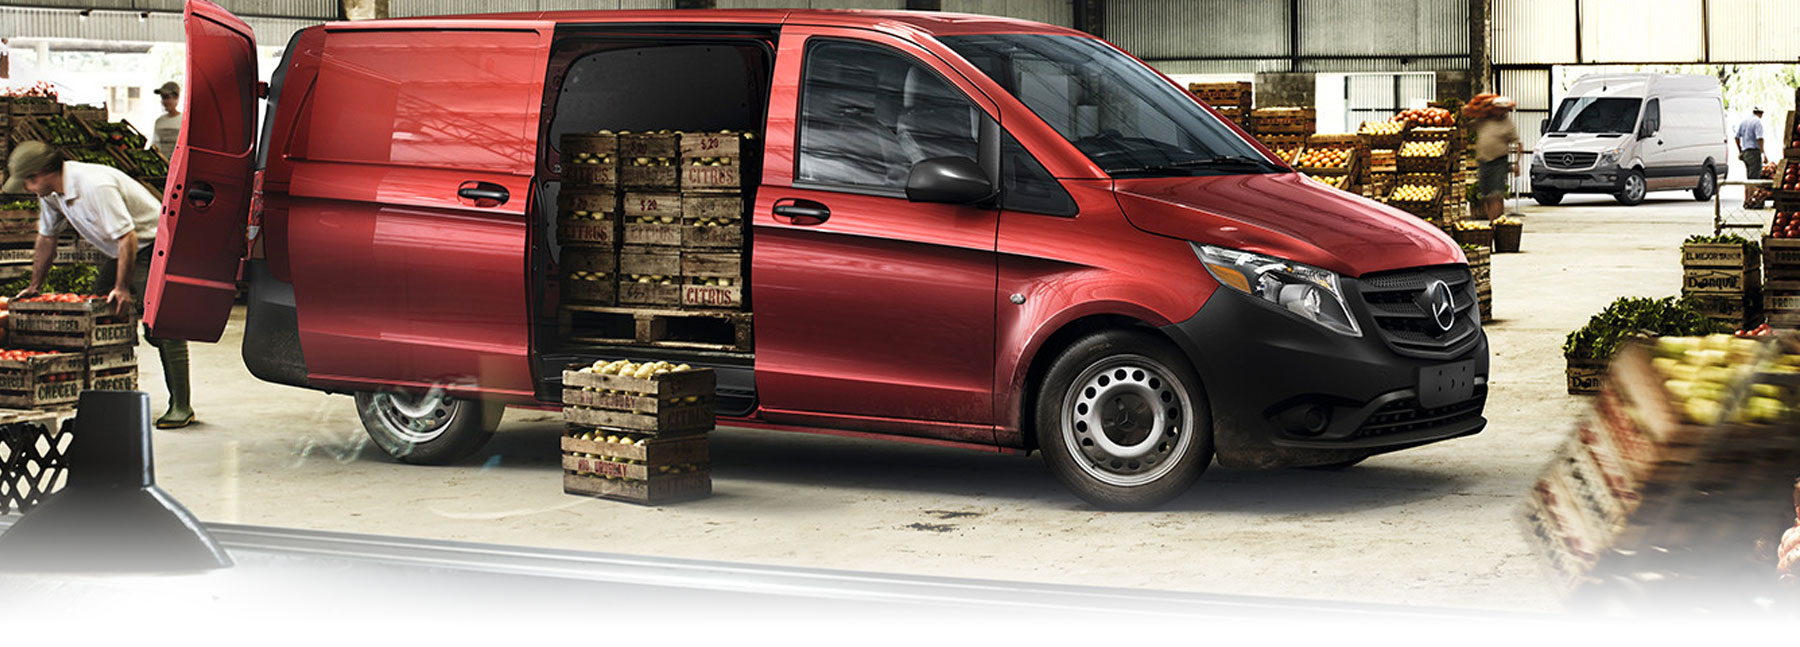 Red 2019 Metris Cargo Van with side door open